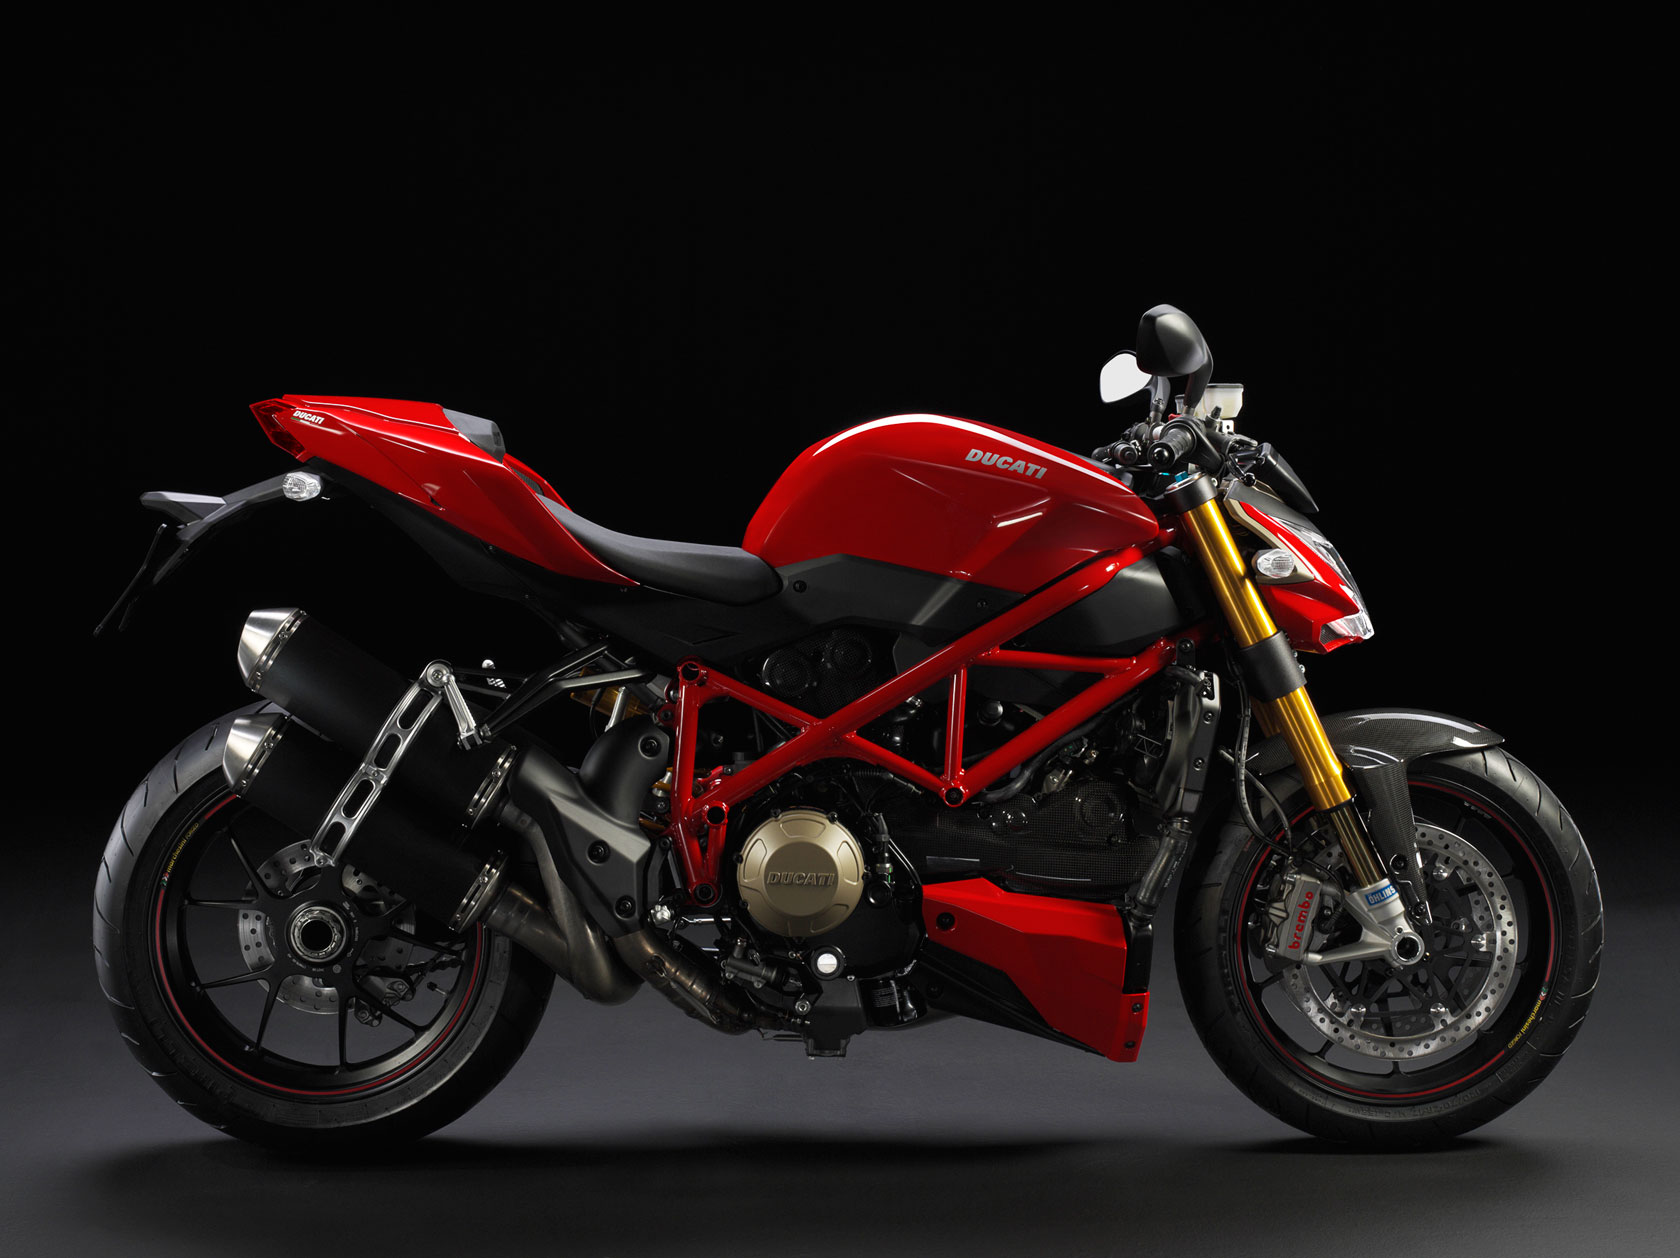 2011 ducati streetfighter s. Black Bedroom Furniture Sets. Home Design Ideas